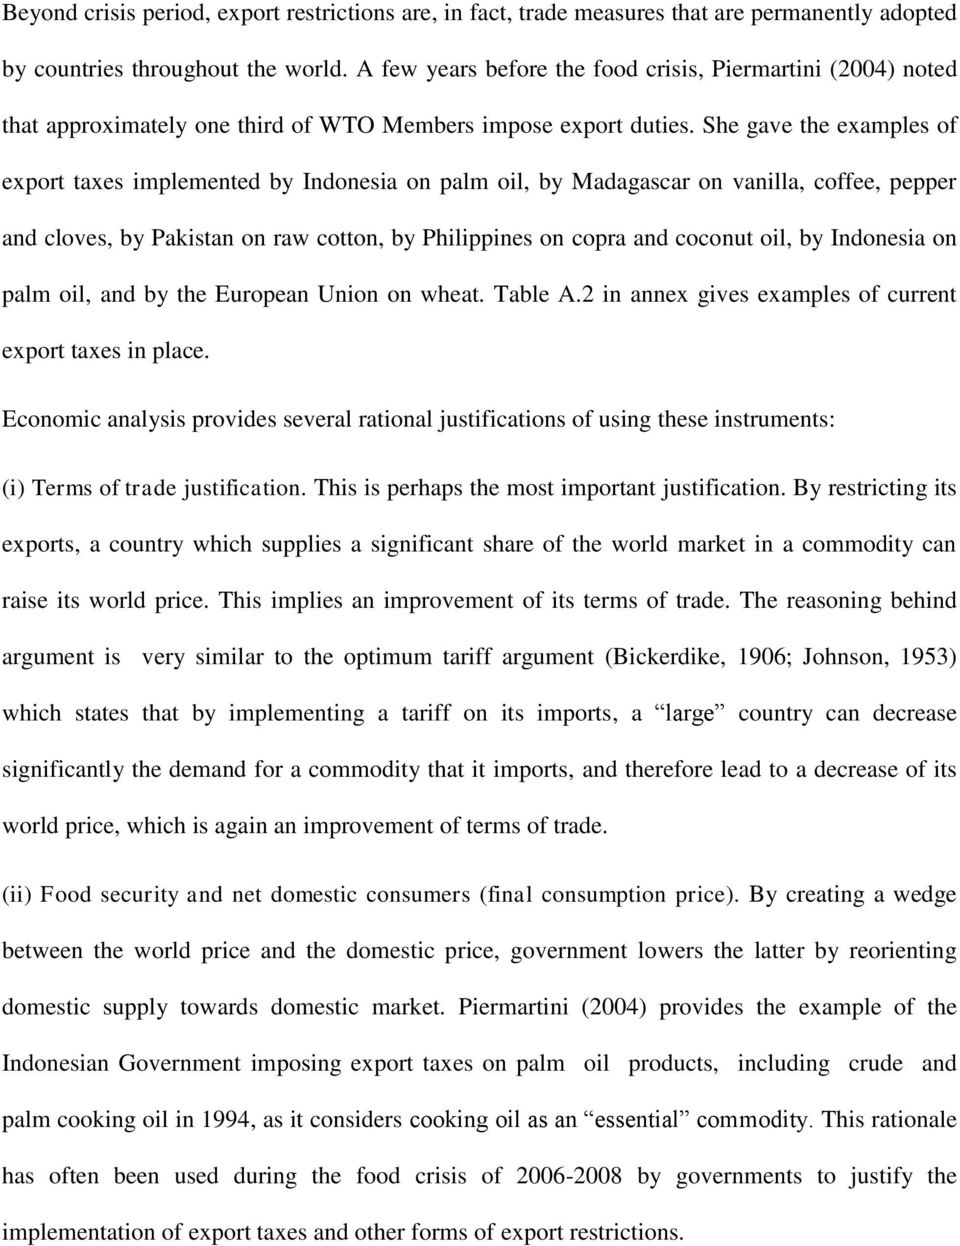 She gave the examples of export taxes implemented by Indonesia on palm oil, by Madagascar on vanilla, coffee, pepper and cloves, by Pakistan on raw cotton, by Philippines on copra and coconut oil, by